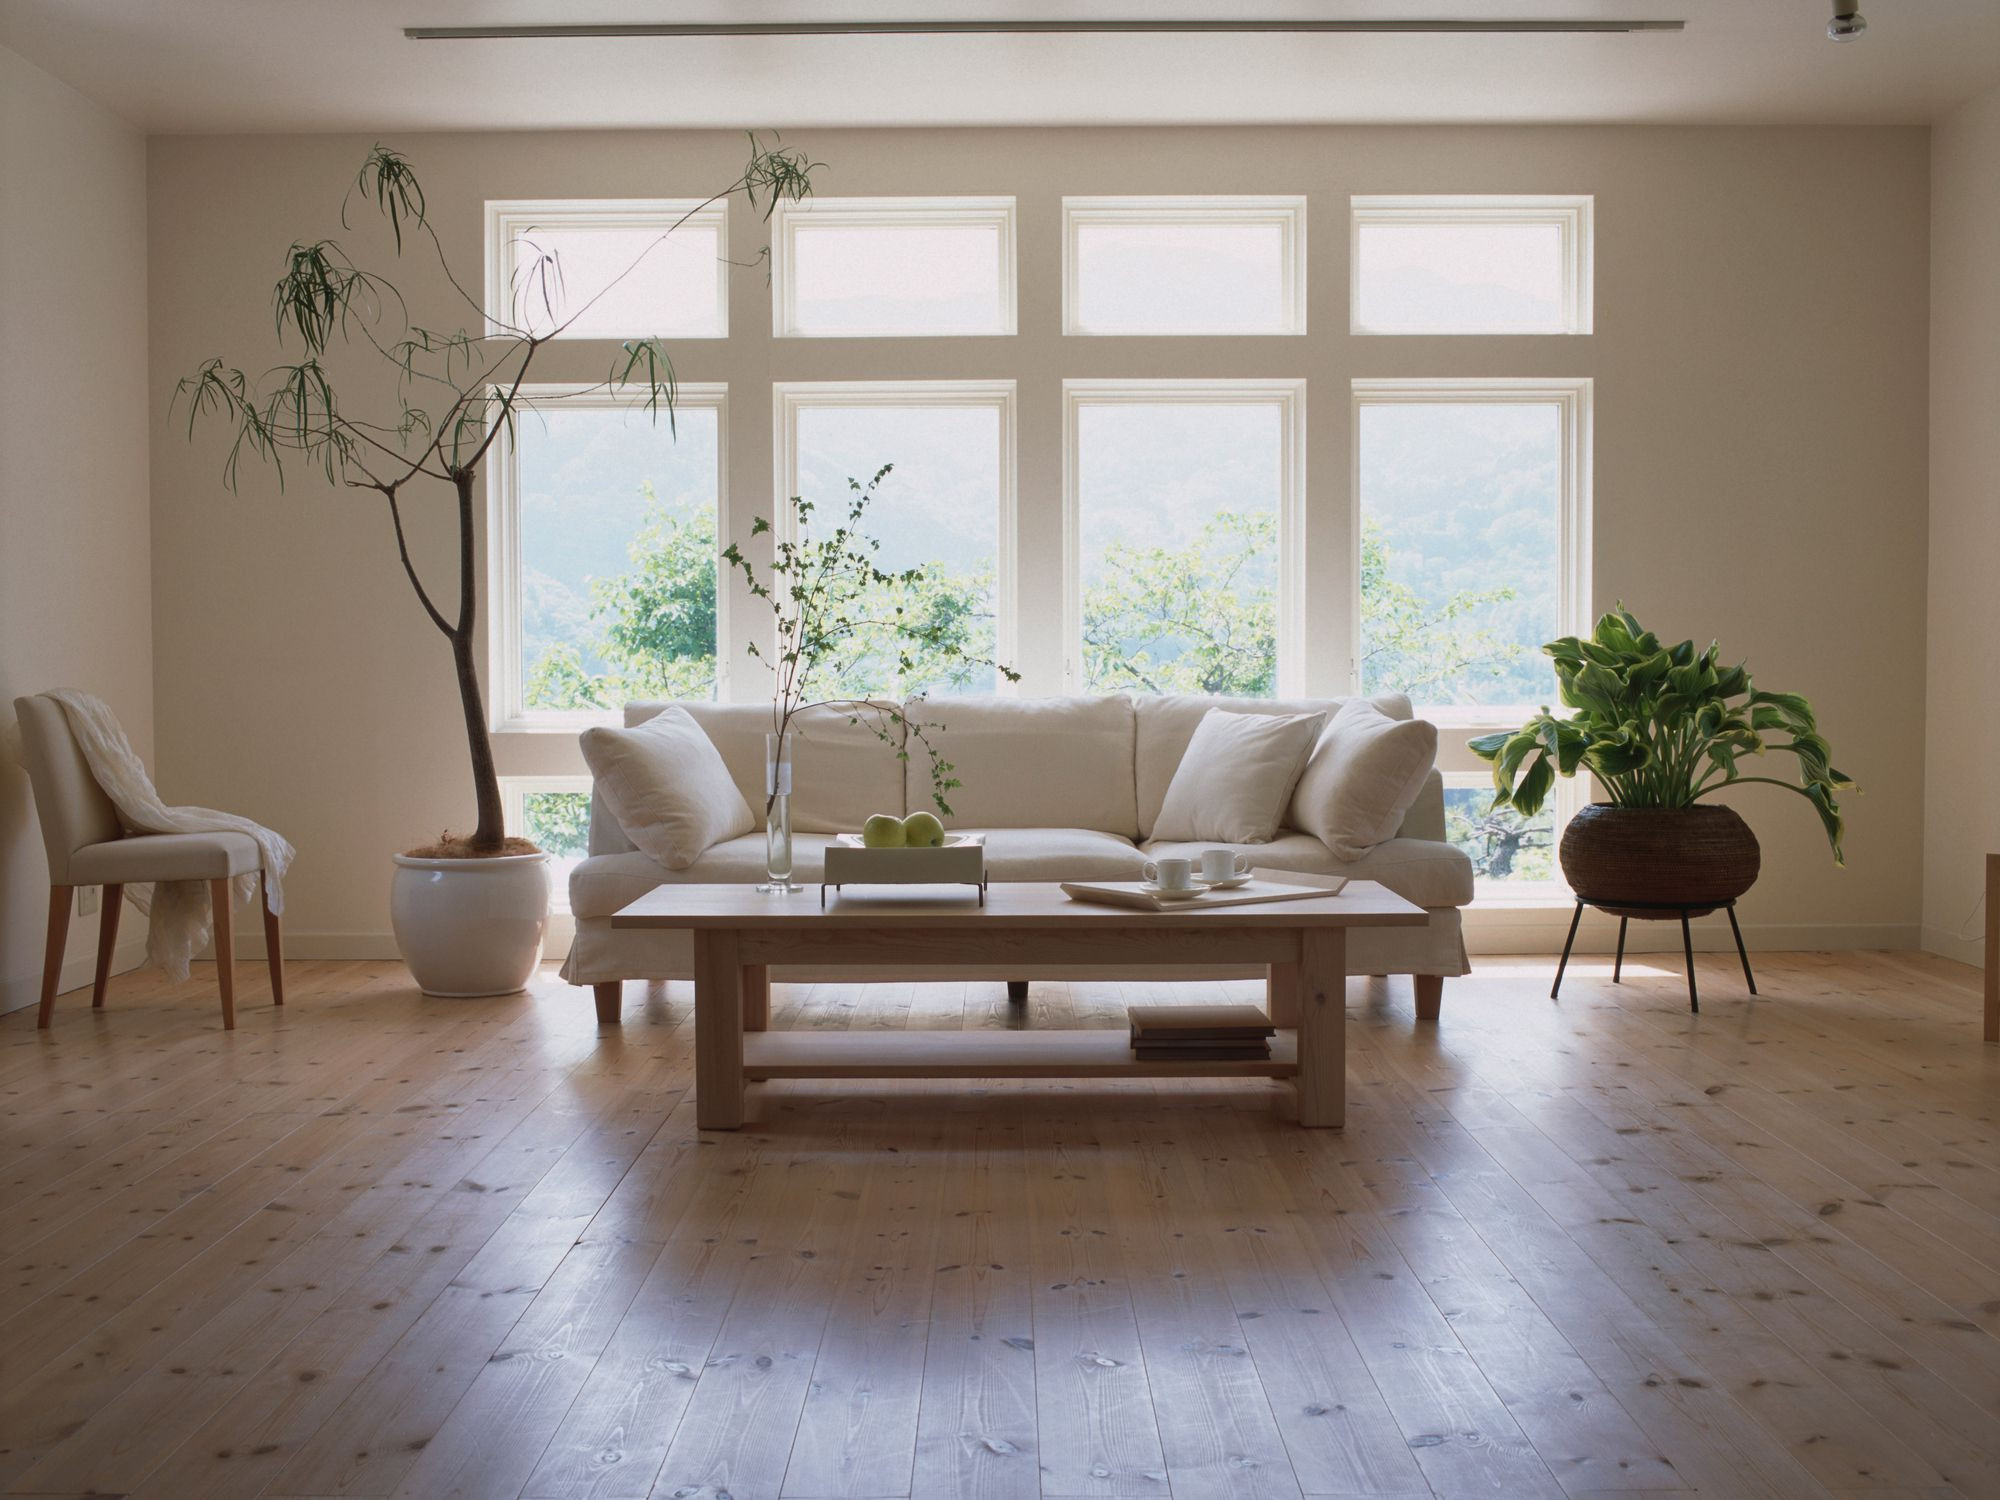 bruce click lock hardwood flooring of laminate flooring pros and cons throughout living room laminate floor gettyimages dexph070 001 58b5cc793df78cdcd8be2938